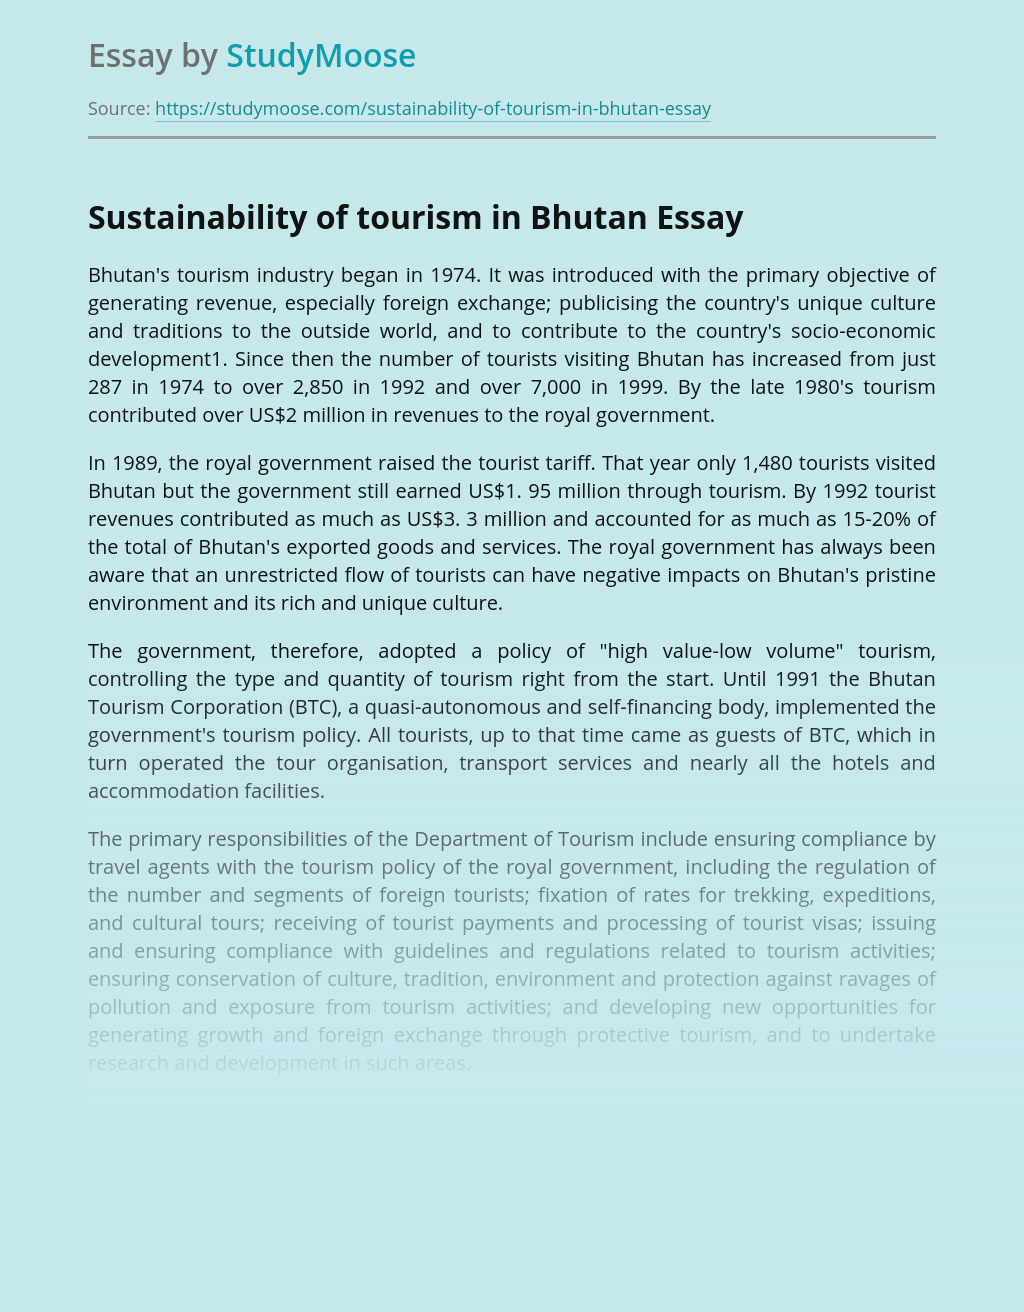 Sustainability of tourism in Bhutan